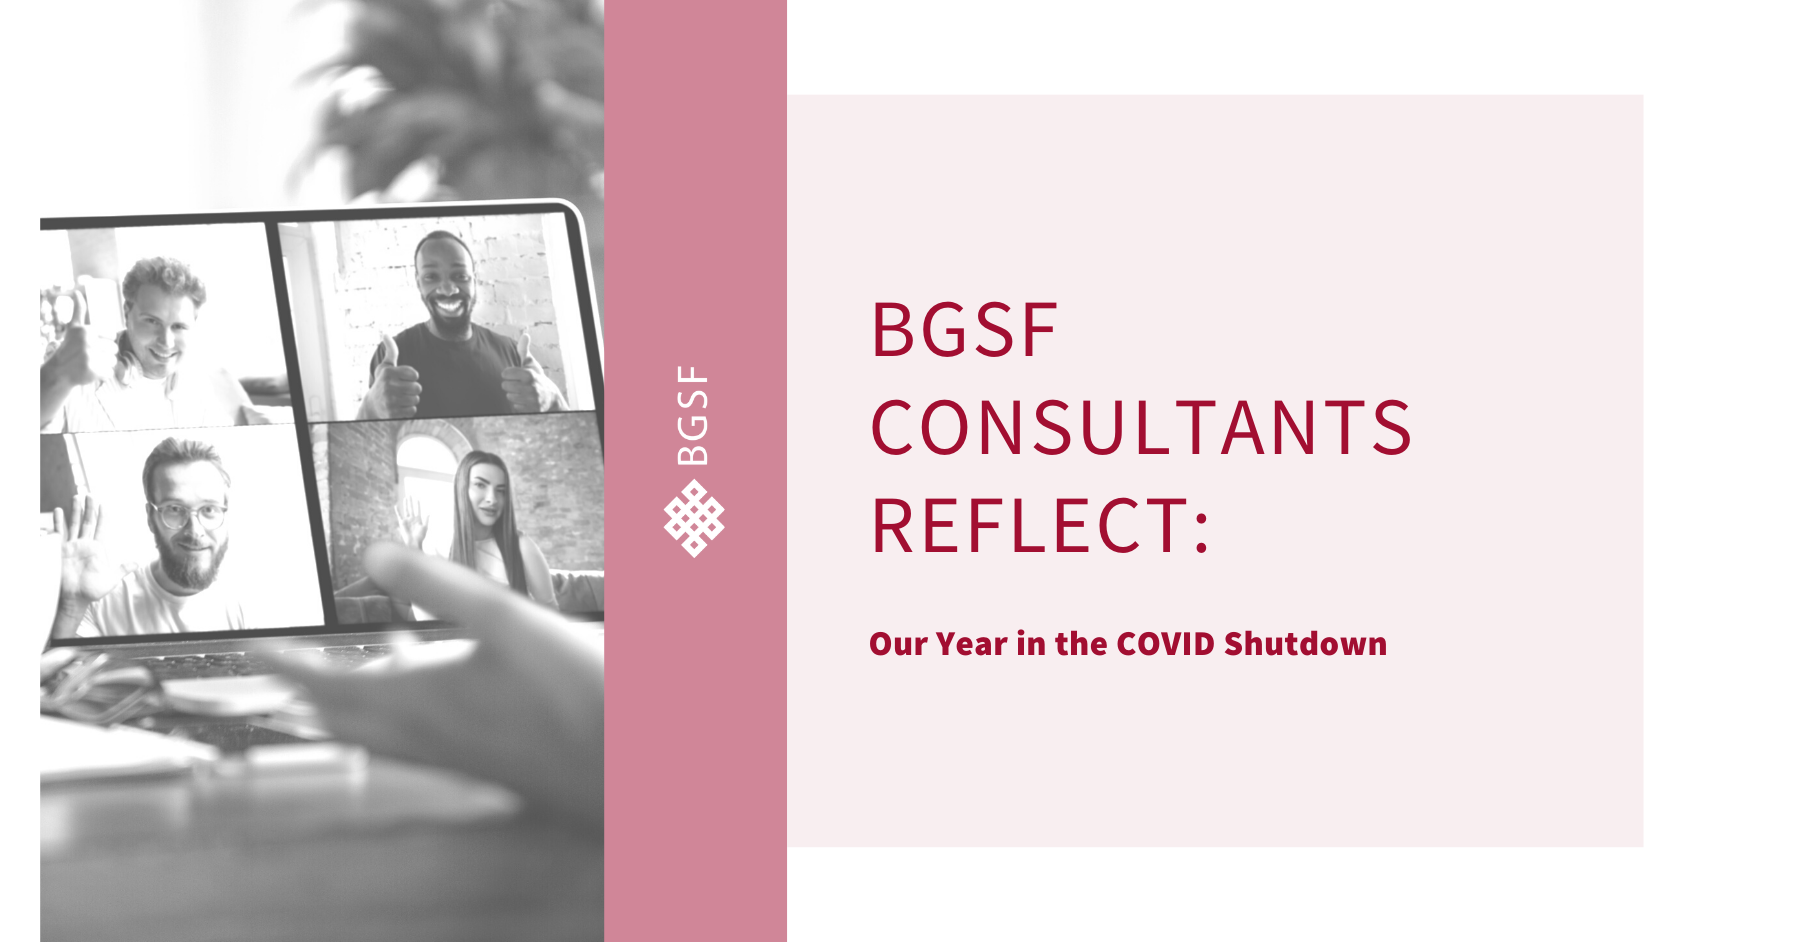 BGSF Consultants Reflect: Our Year in the COVID Shutdown